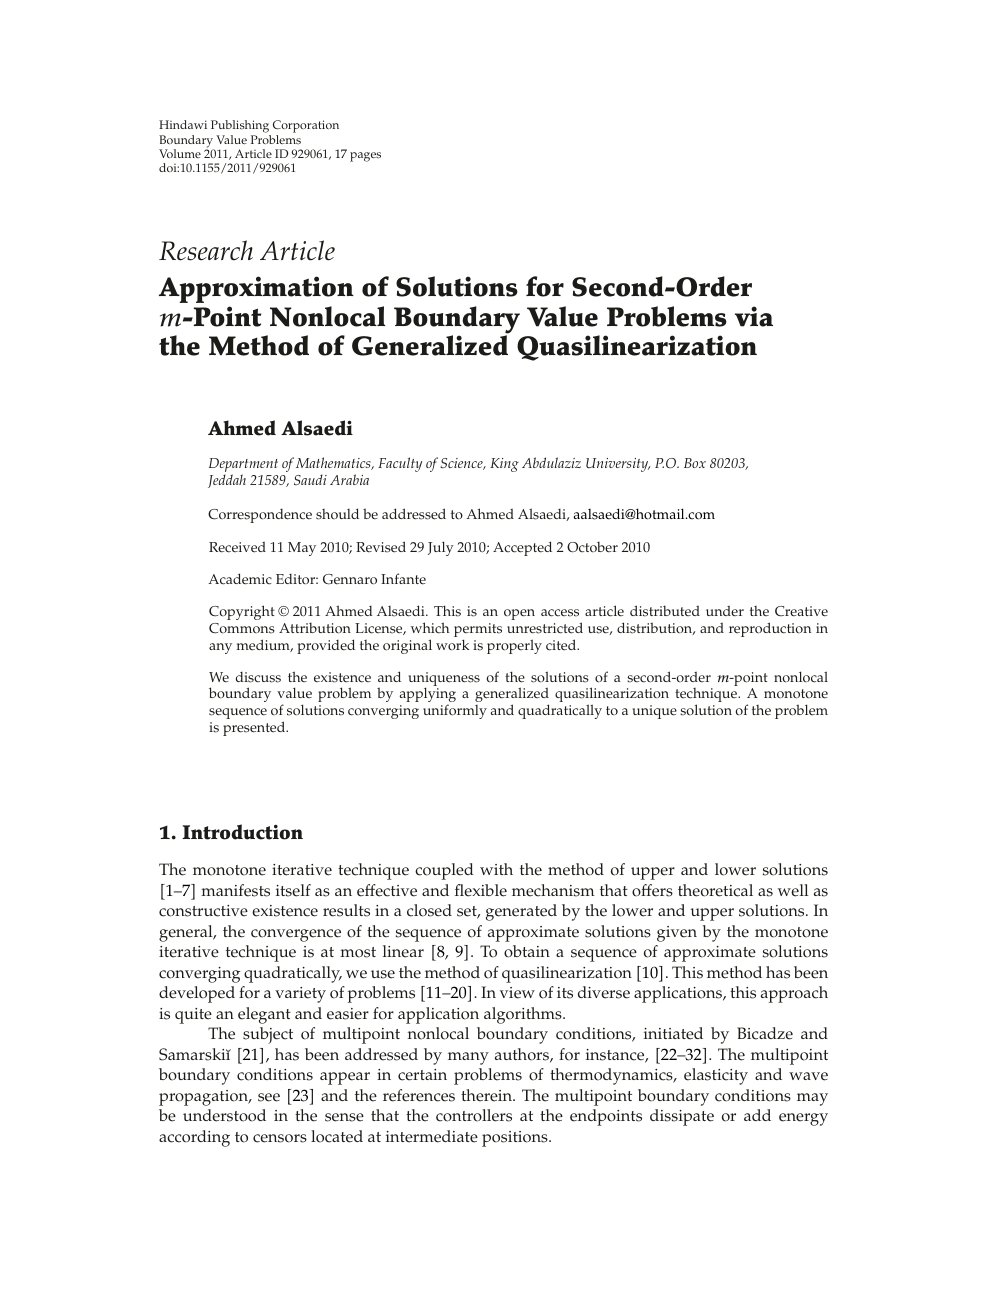 Approximation of Solutions for Second-Order m-Point Nonlocal